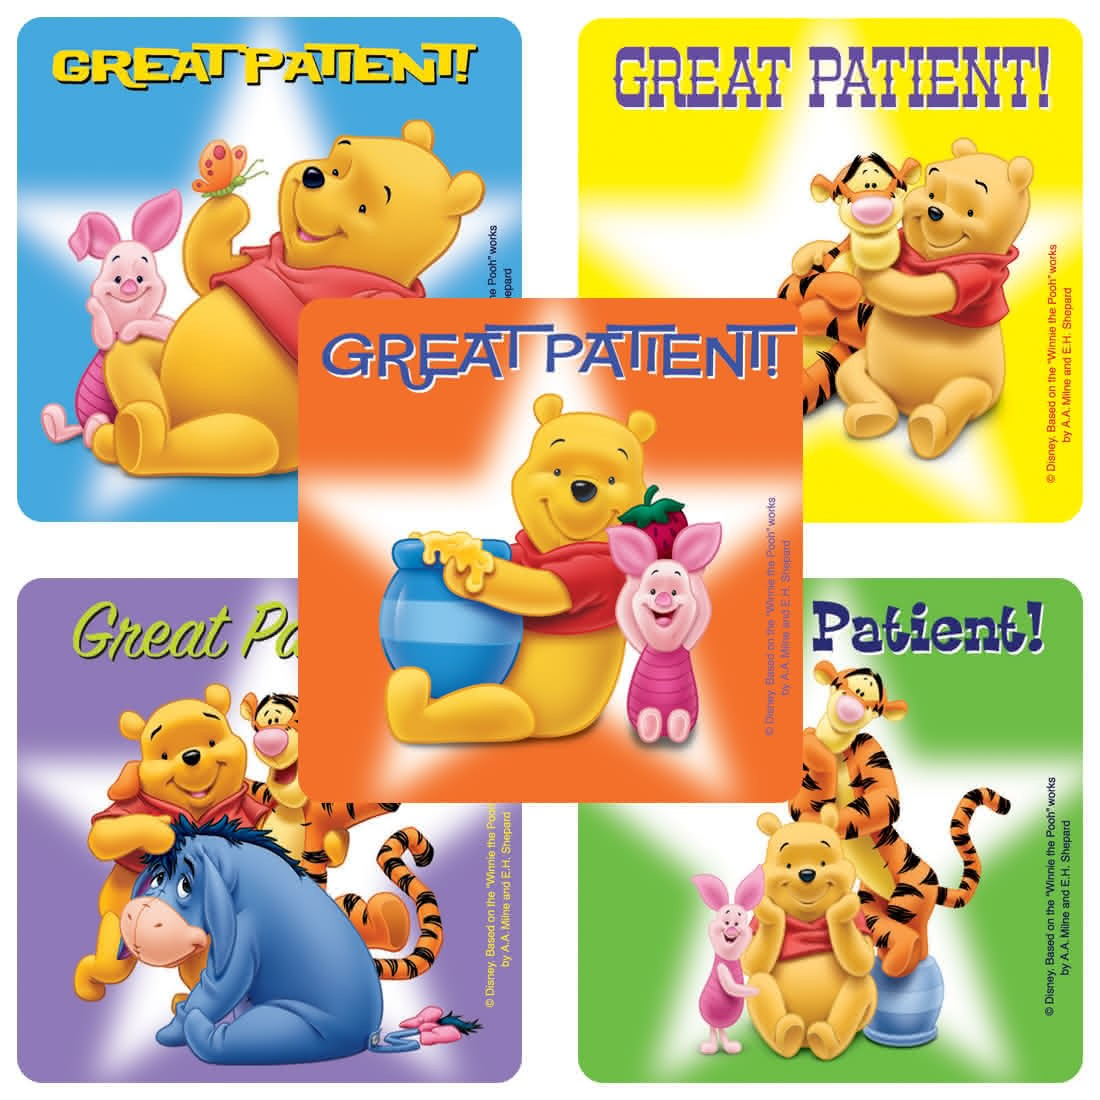 Winnie the Pooh Patient Stickers                   [image]